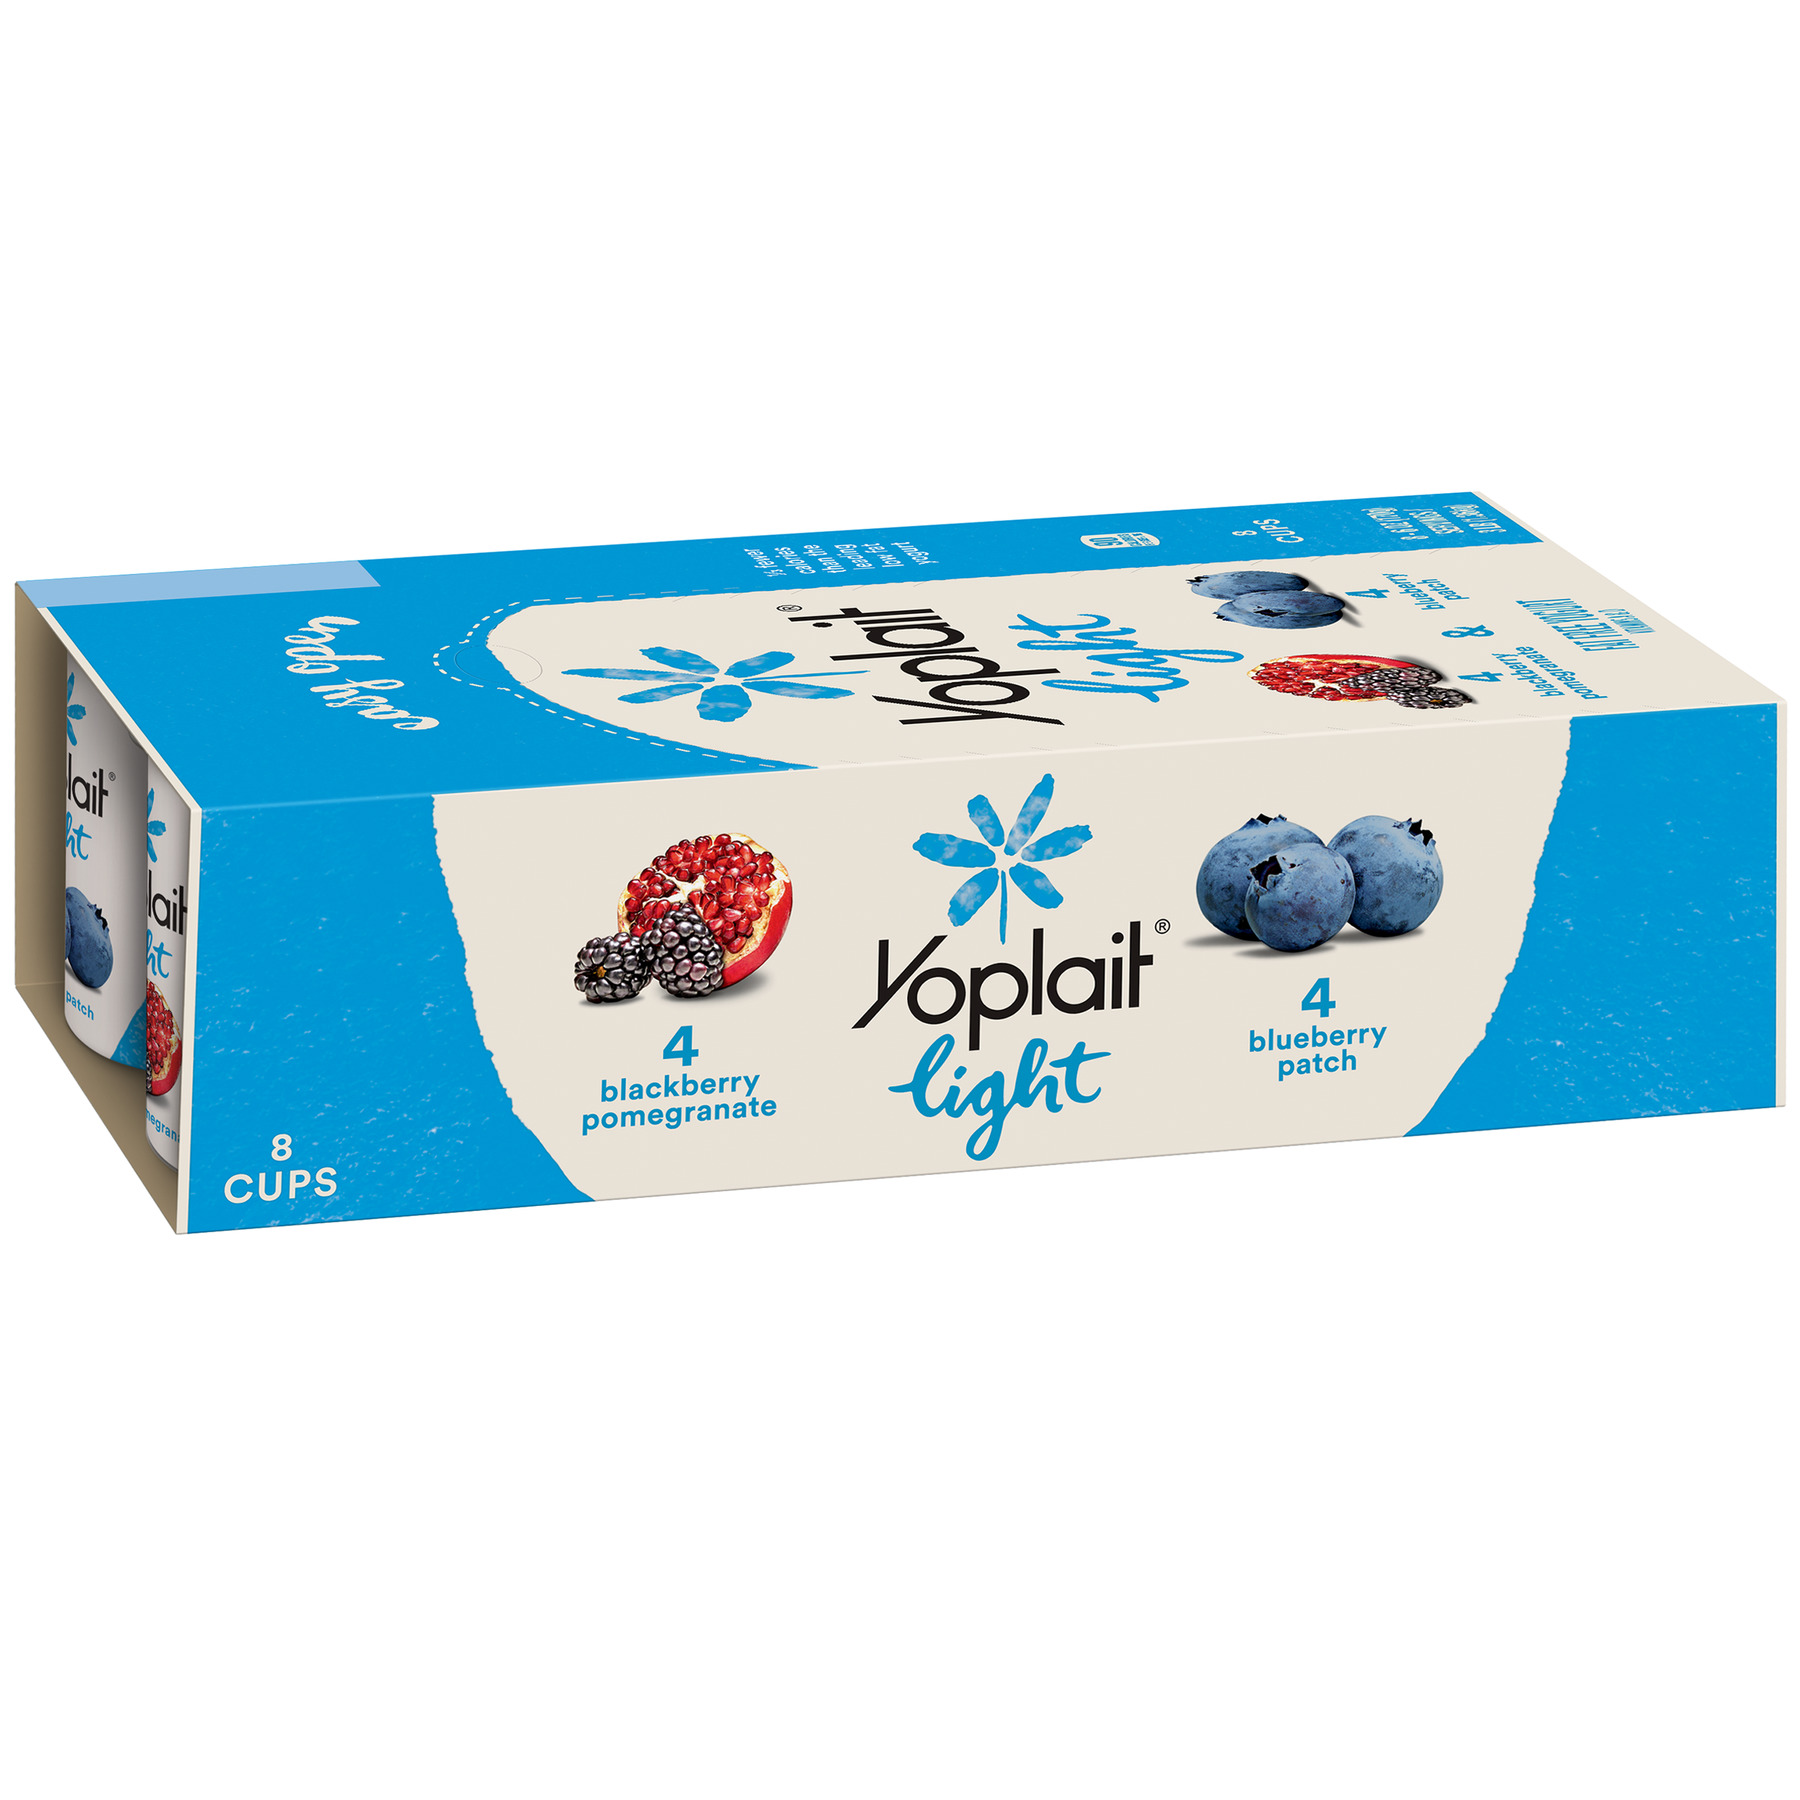 Yoplait Light Yogurt Blackberry Pomegranate/Blueberry 48 oz 8 Ct